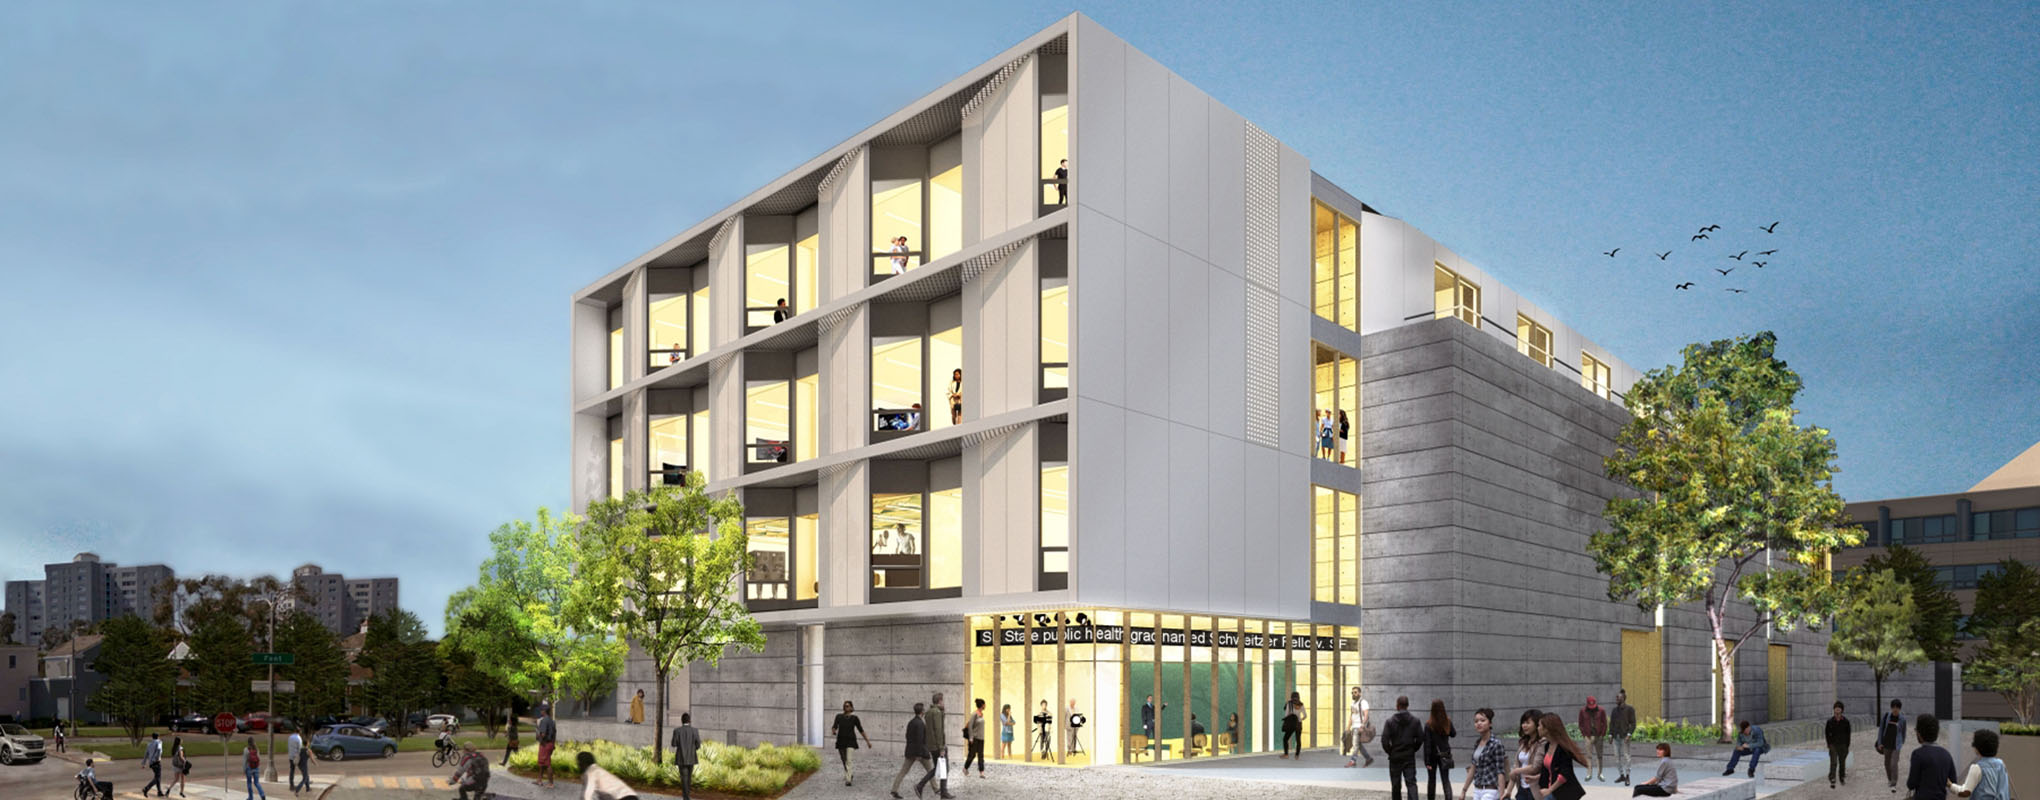 Liberal and Creative Arts Building Rendering